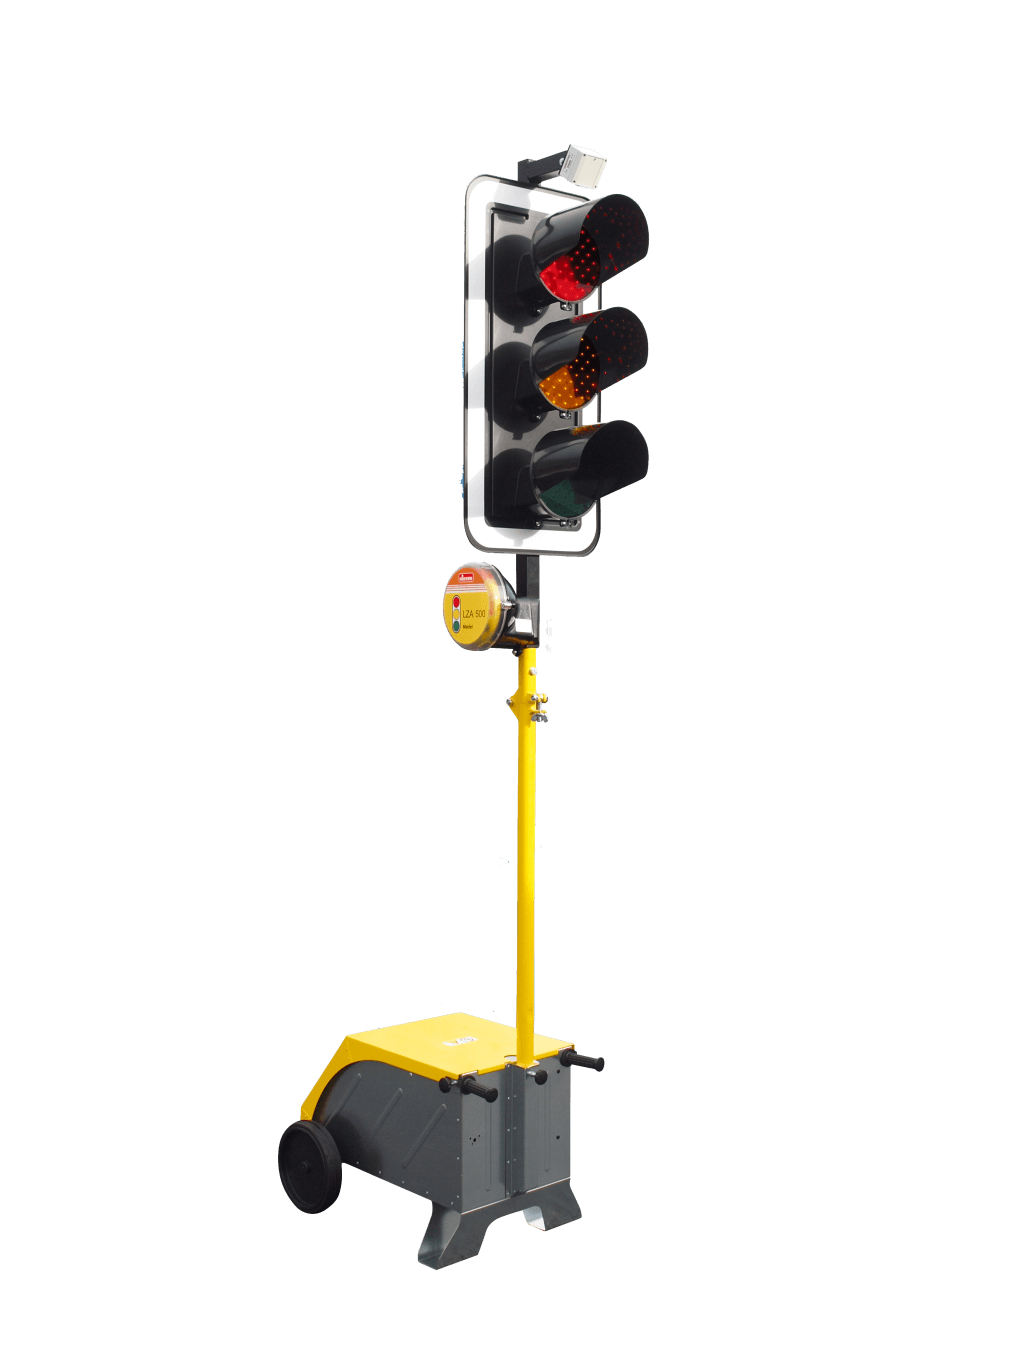 Light Traffic Free Transparent Image HD PNG Image